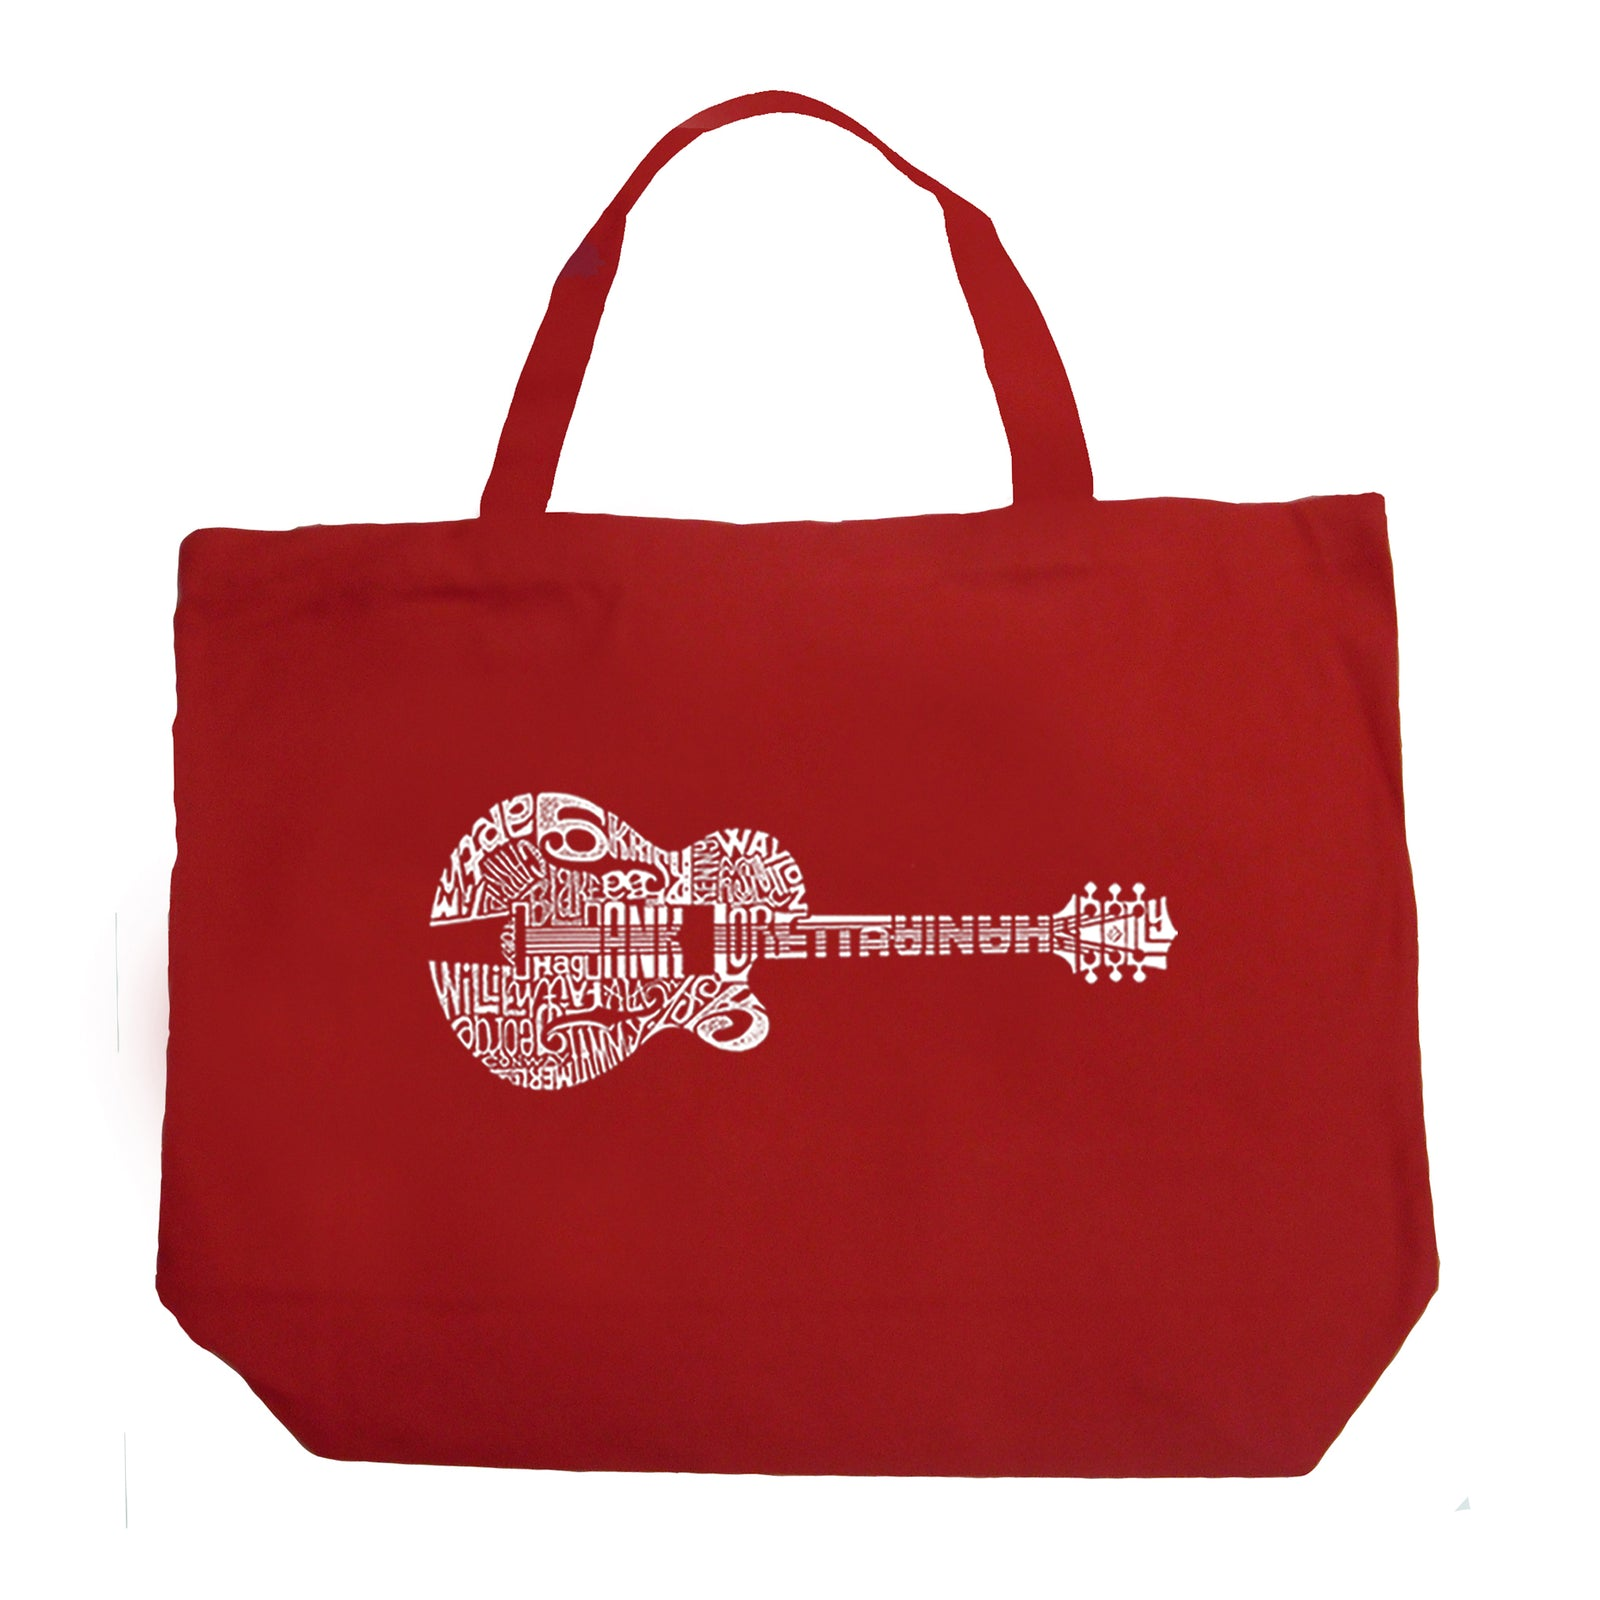 Large Tote Bag - Country Guitar